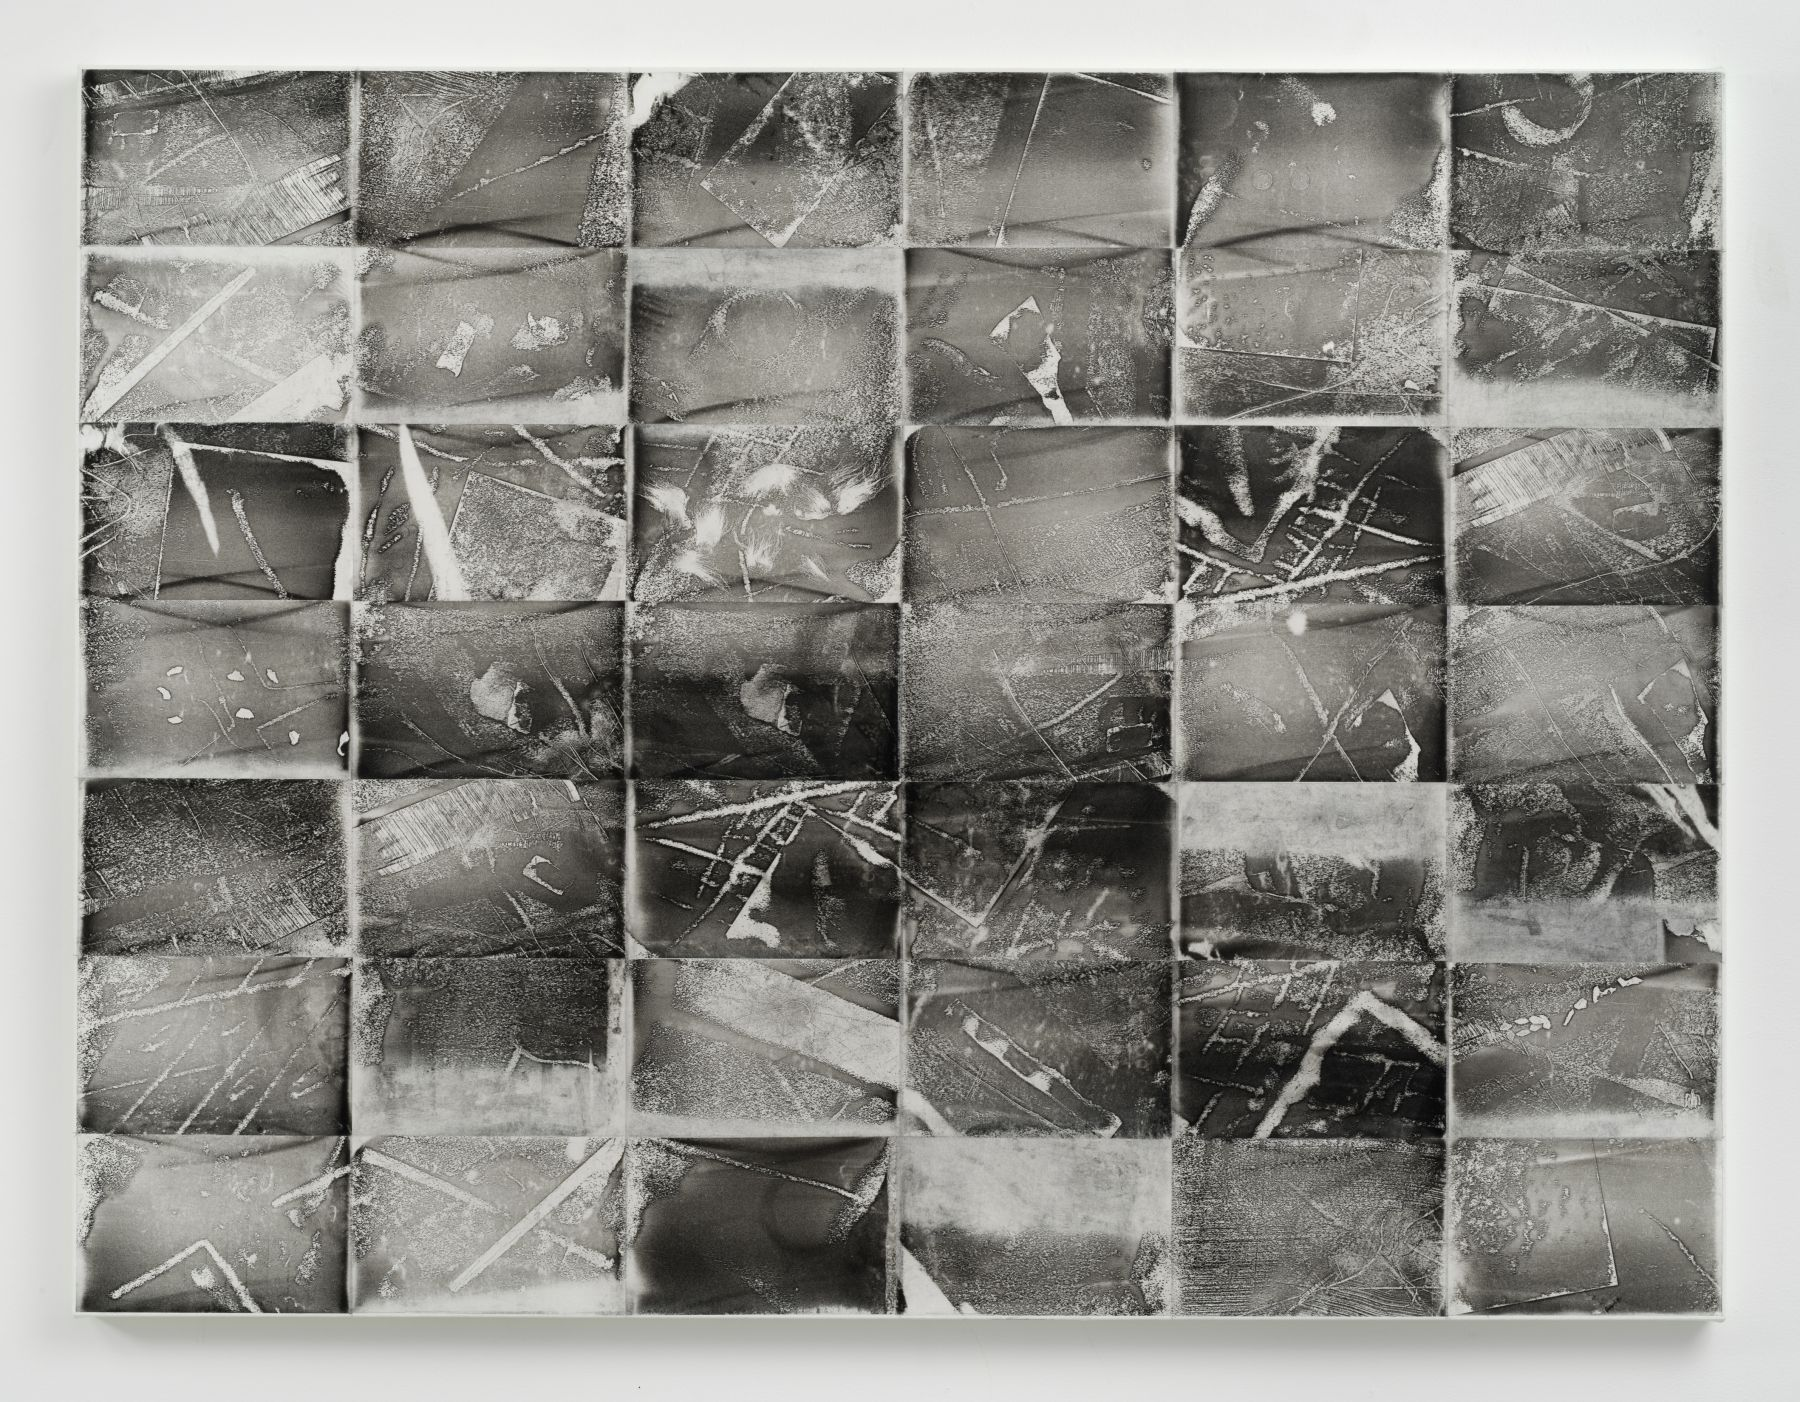 Jack Whitten, Xeroxed! III, 1975